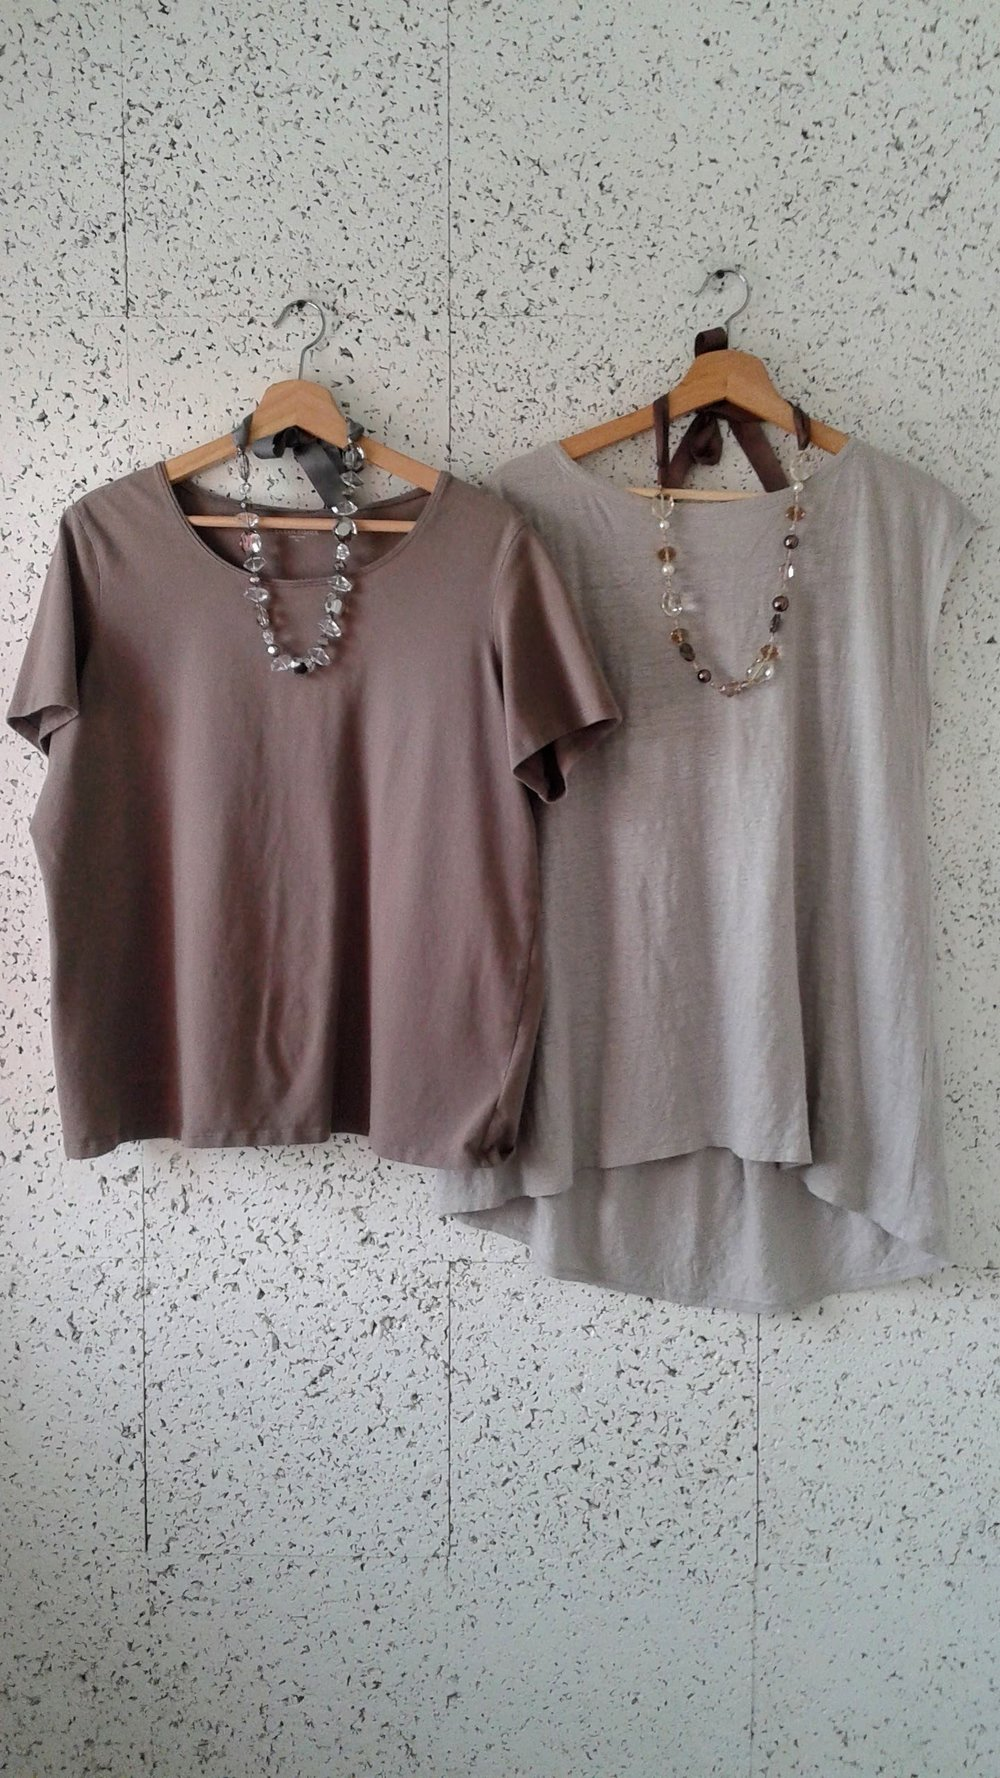 Eileen Fisher beige top; Size XL, $30. Eileen Fisher grey top; Size L, $40